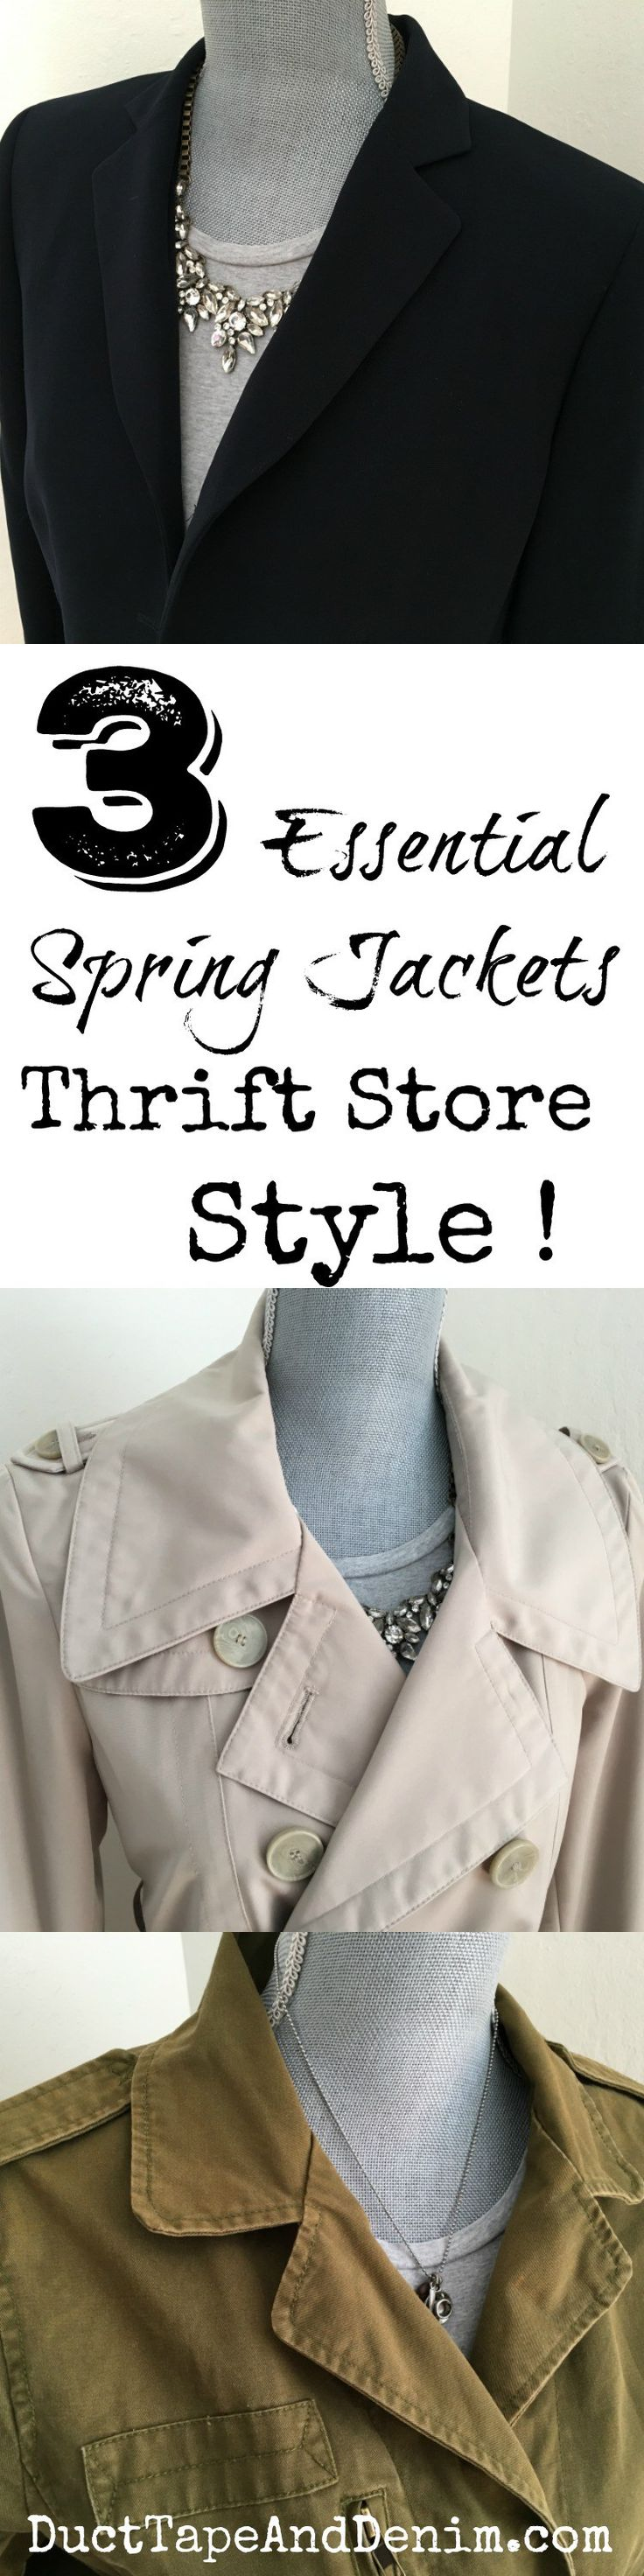 3 Essential Spring Jackets, Thrift Store Style ~ spring fashion ~ capsule wardrobe ~ navy blazer, trench coat, utility jacket ~ DuctTapeAndDenim.com